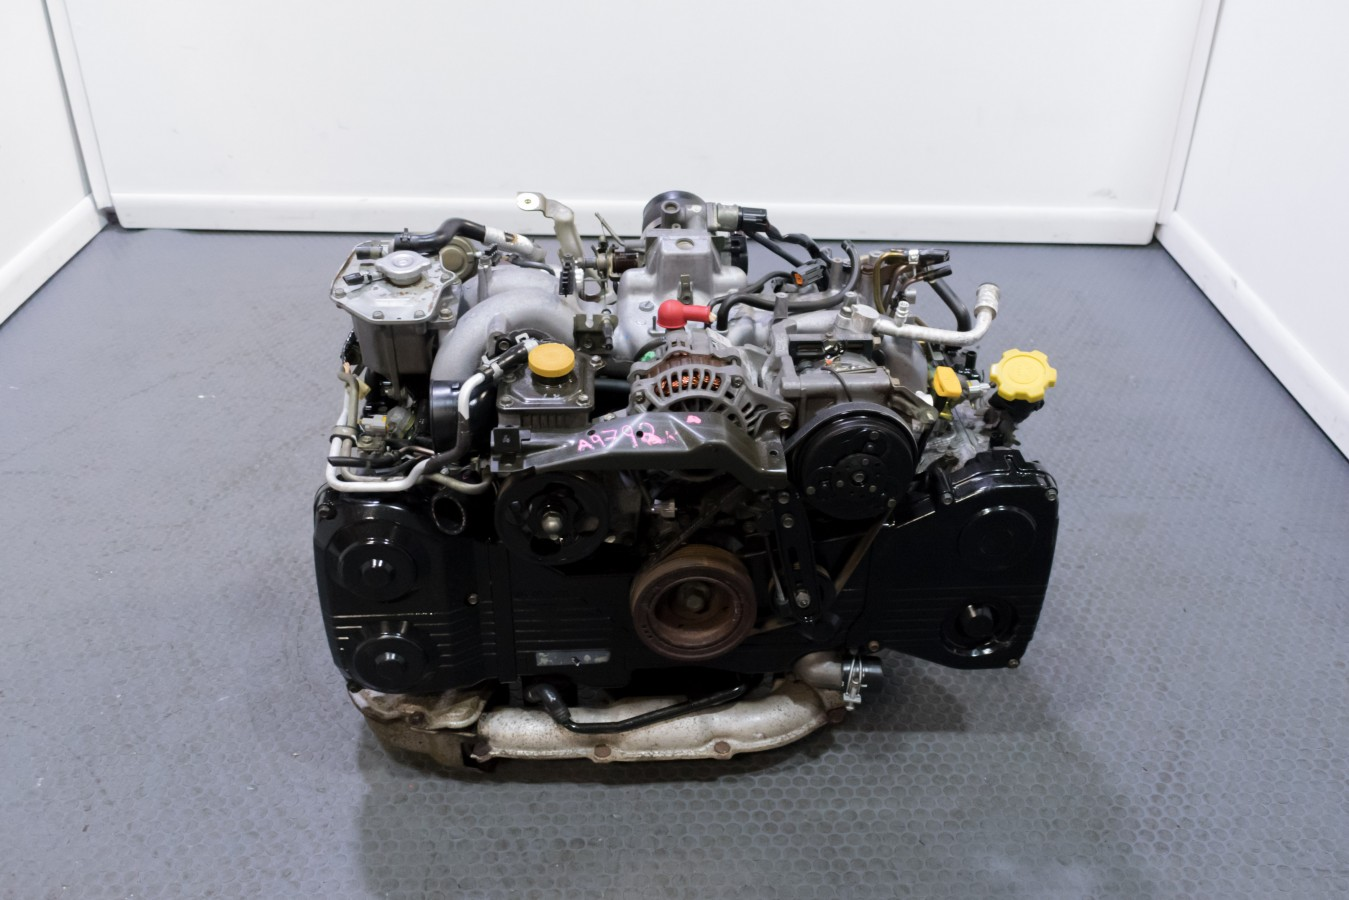 JDM 93-01 Subaru Impreza WRX Ver 5 & 6 GC8 2 0L with a TD04 Turbocharger  Engine Swap for sale